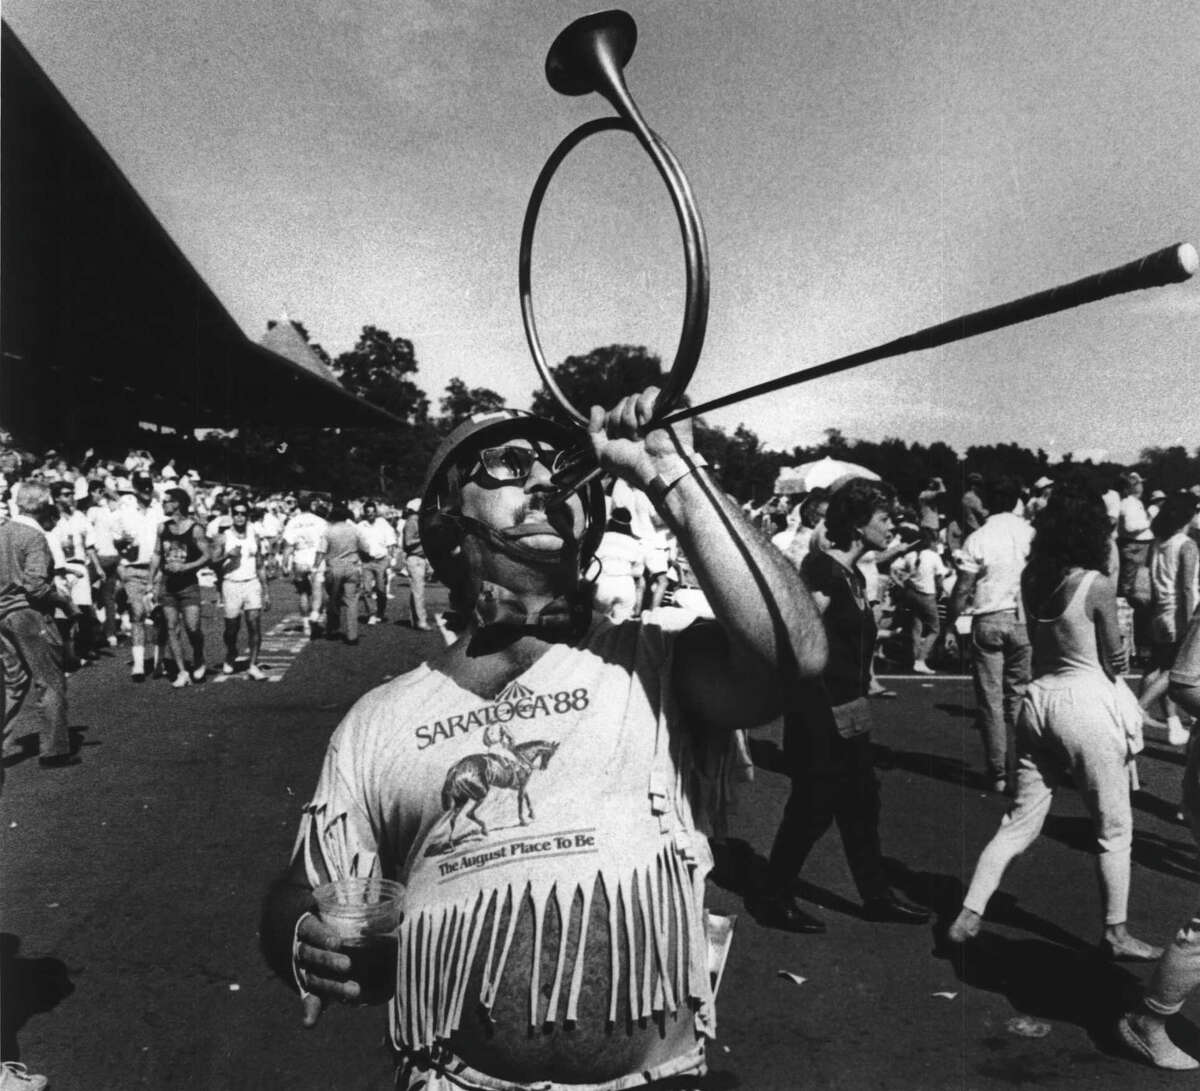 Stephen Simonelli of Everett, Massachusetts roots for 49er on Travers Day wearing a funny outfit and carrying a riding crop and hunting horn at Saratoga Race Course, New York. August 20, 1988 (John Carl D'Annibale/Times Union Archive)